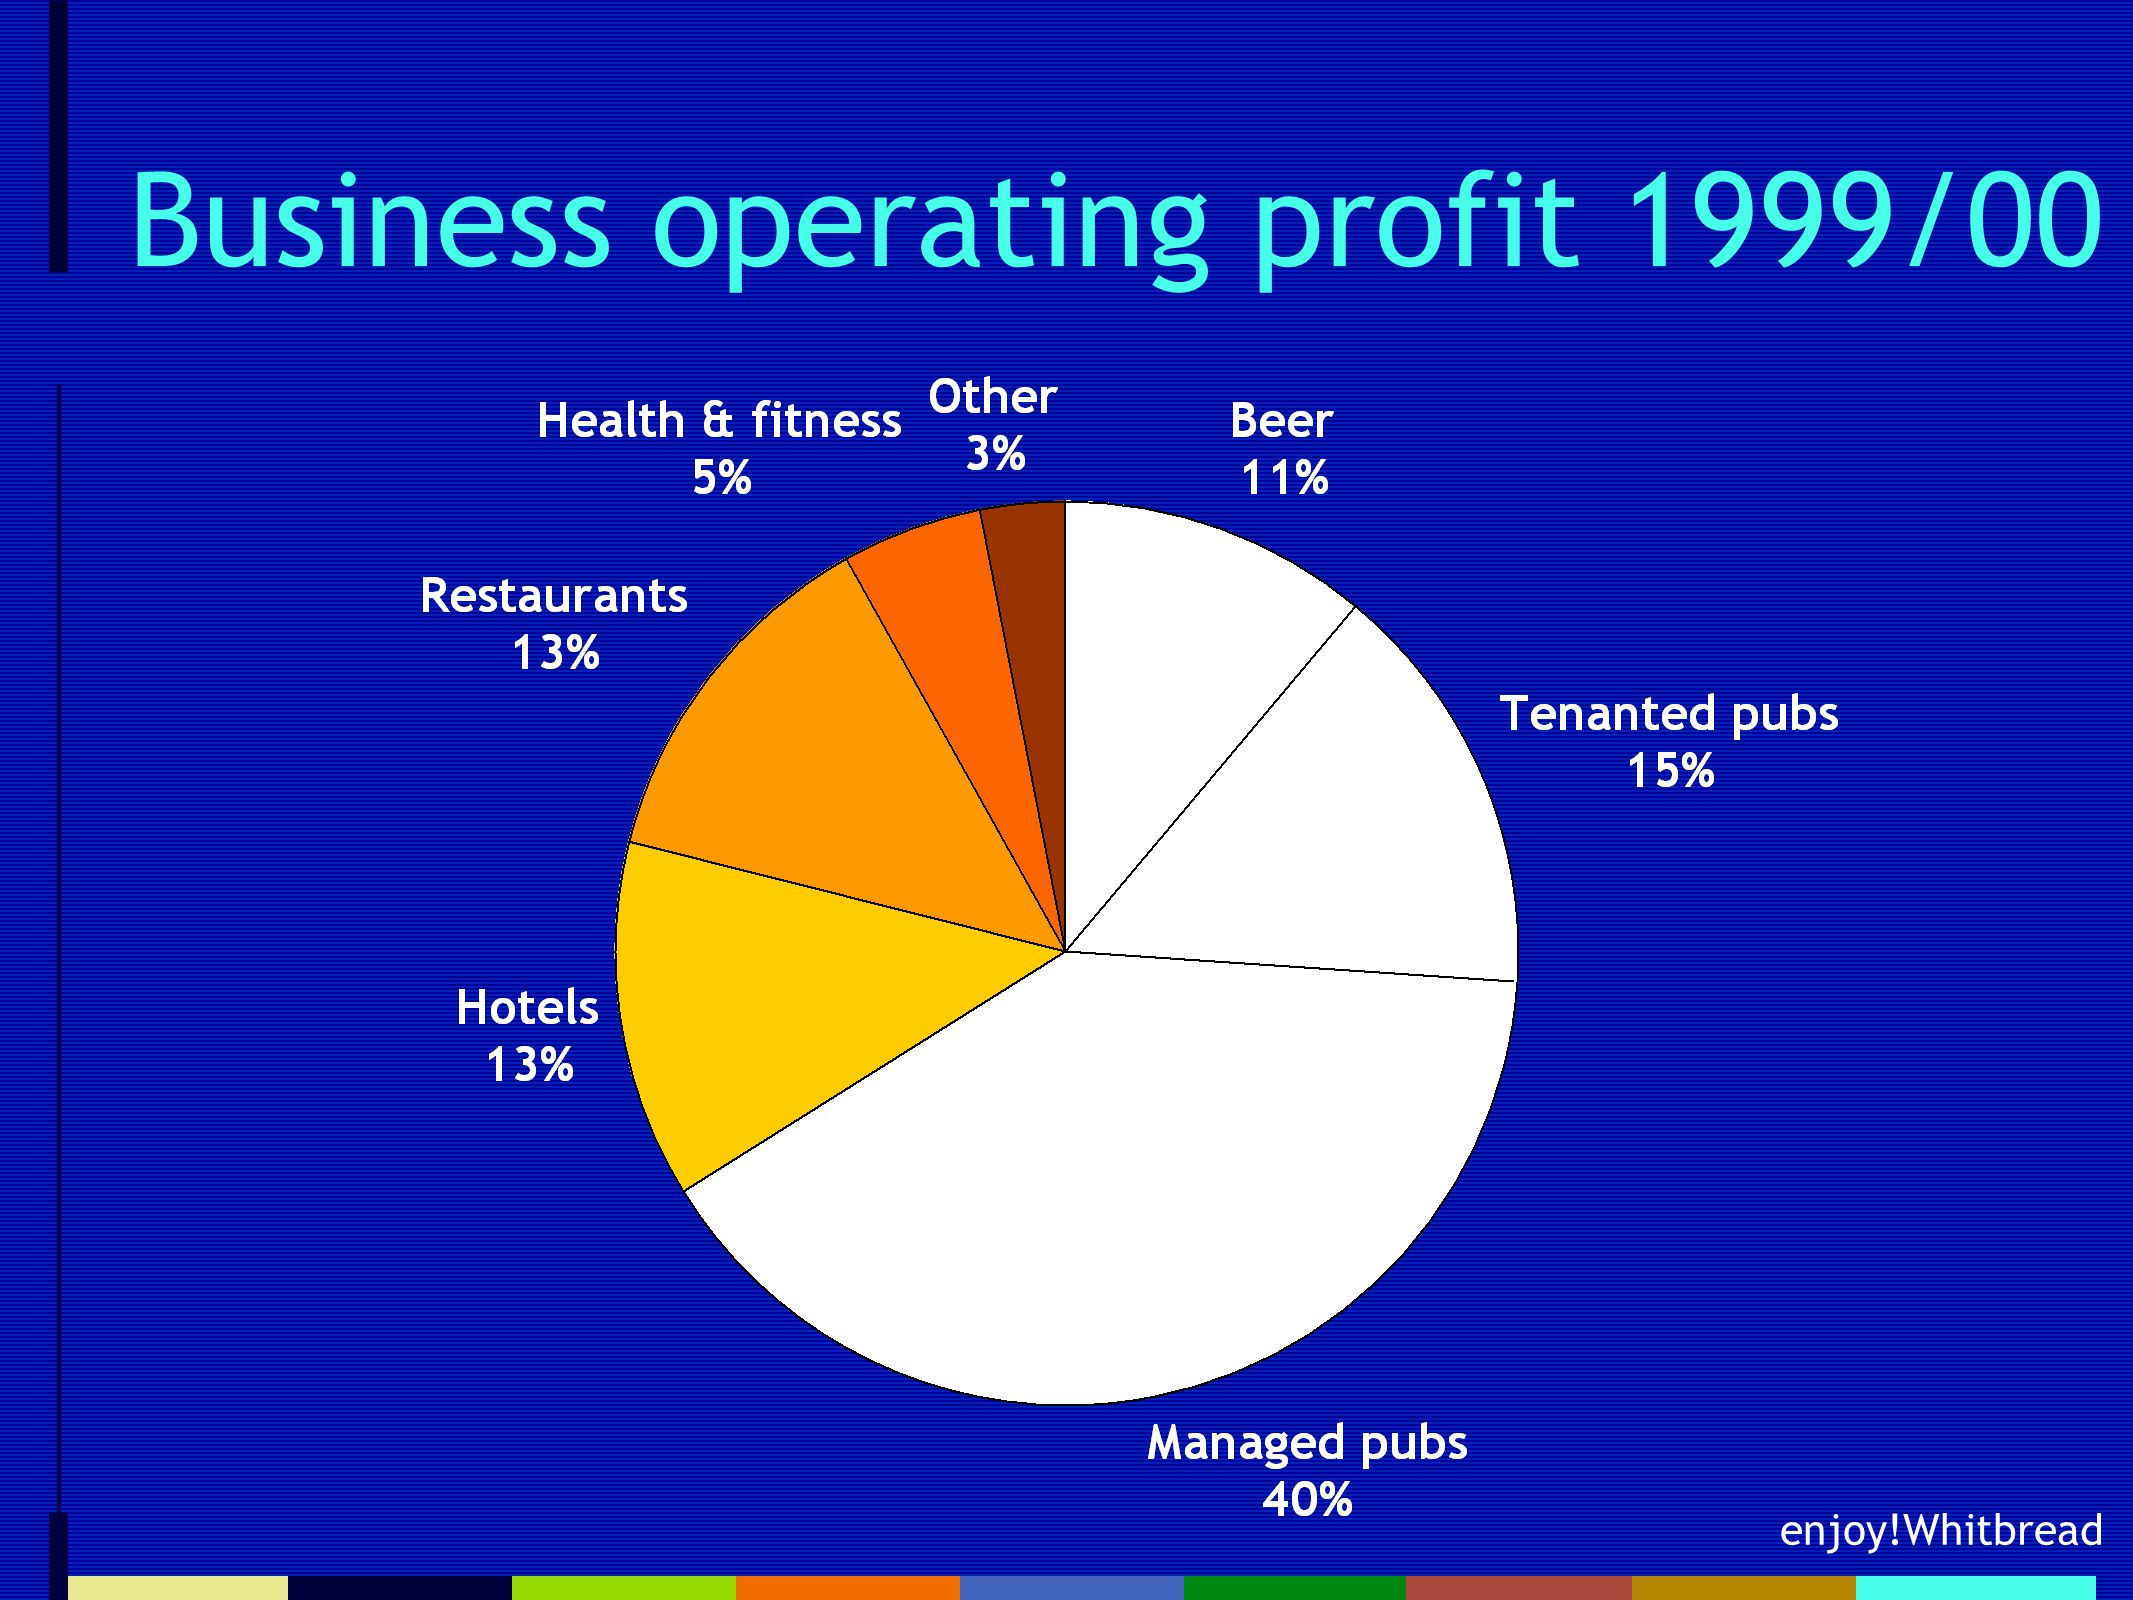 enjoy!Whitbread Business operating profit 1999/00